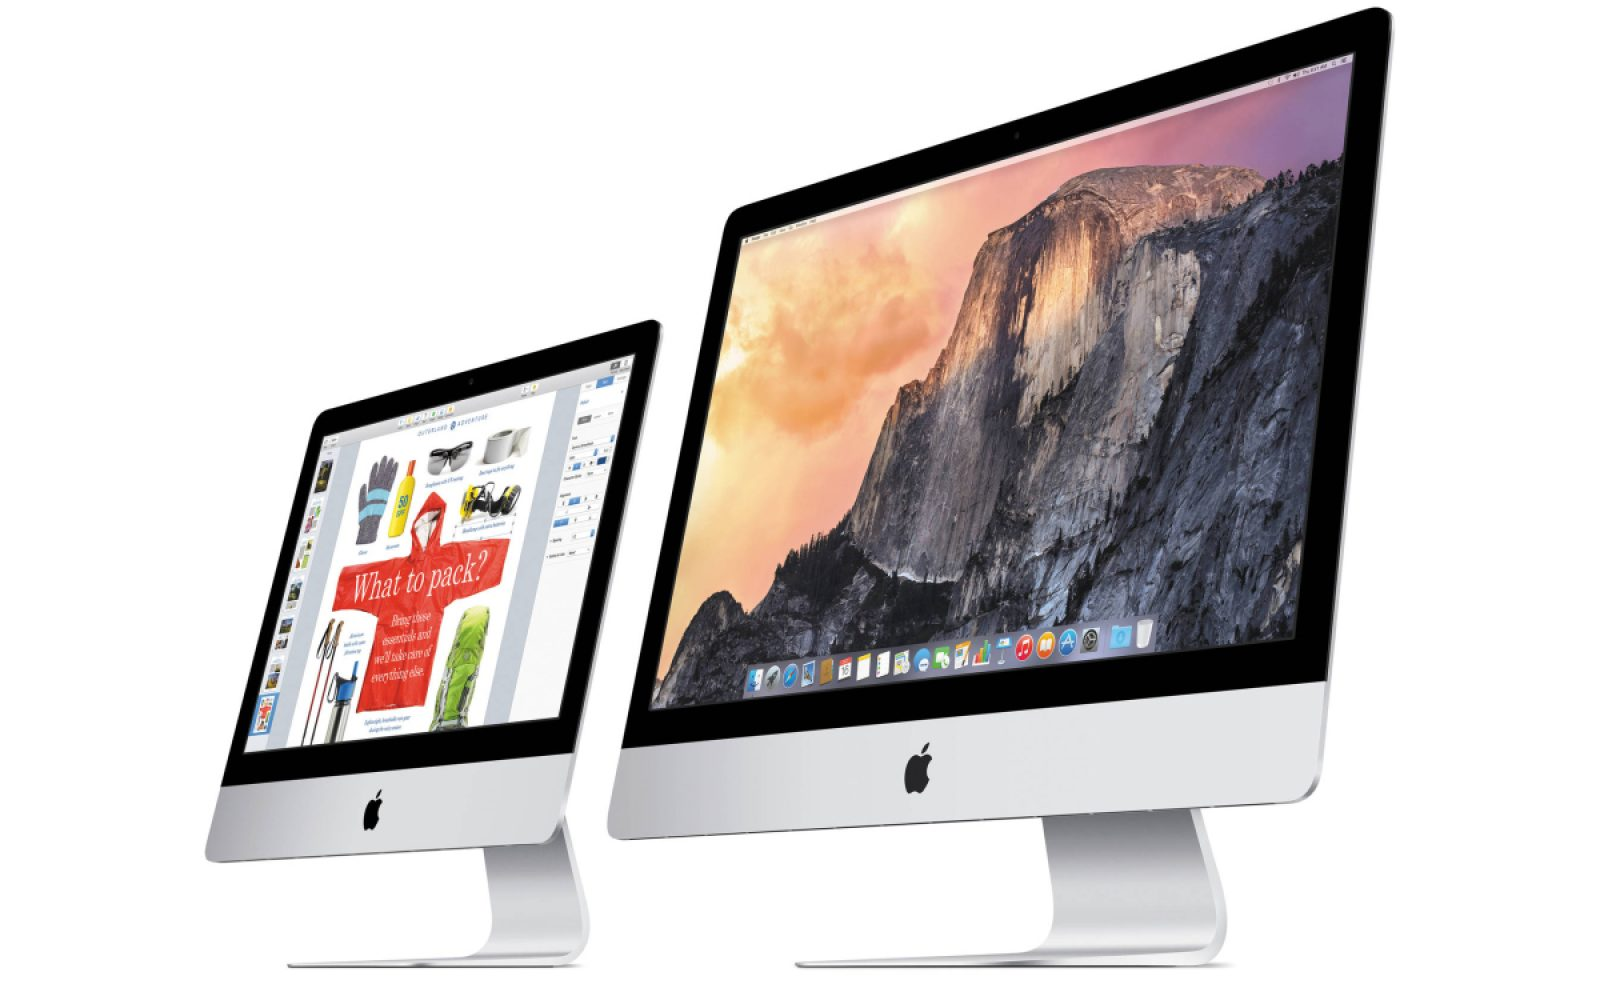 Apple issues OS X 10.11.5 software update via Mac App Store